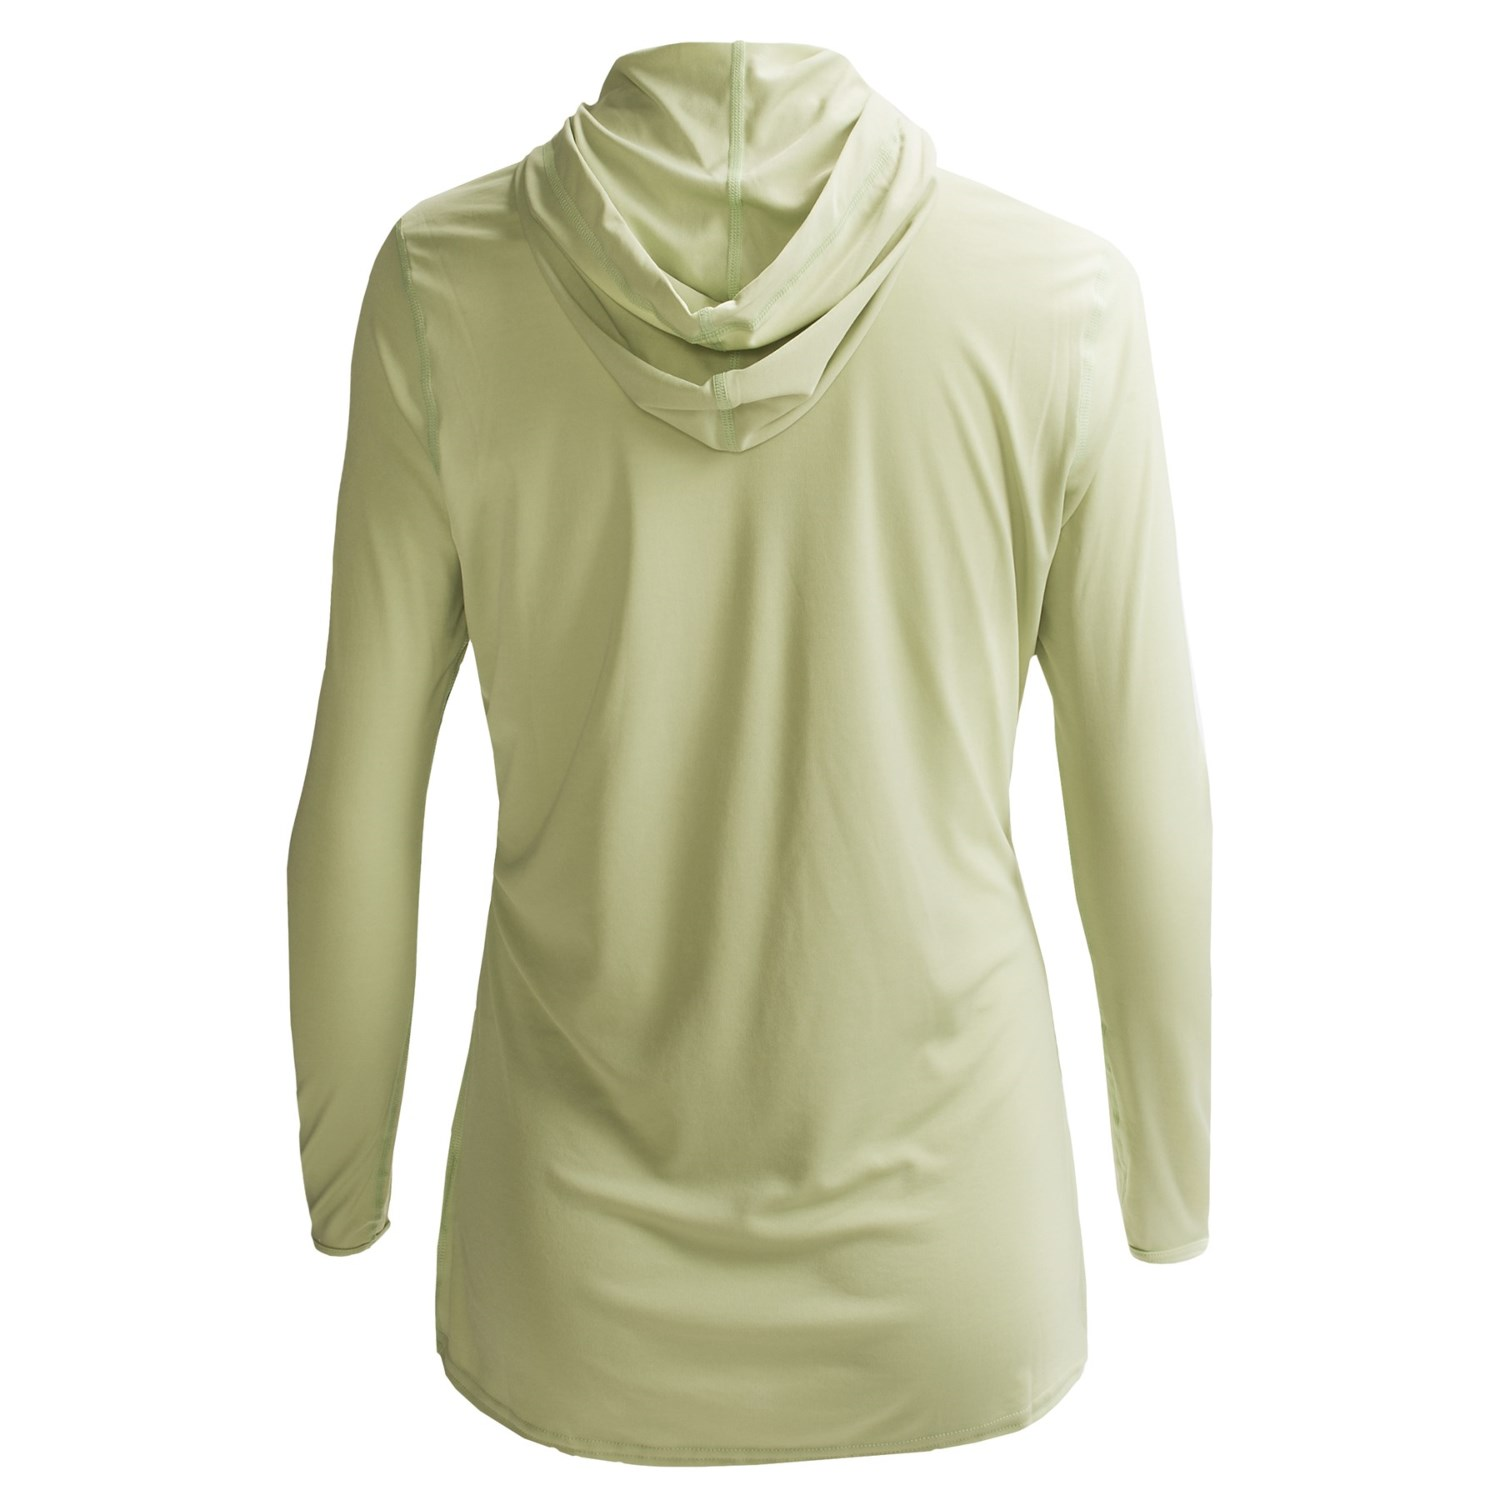 Simms solarflex hooded shirt for women 7029v save 34 for Lightweight breathable long sleeve shirts